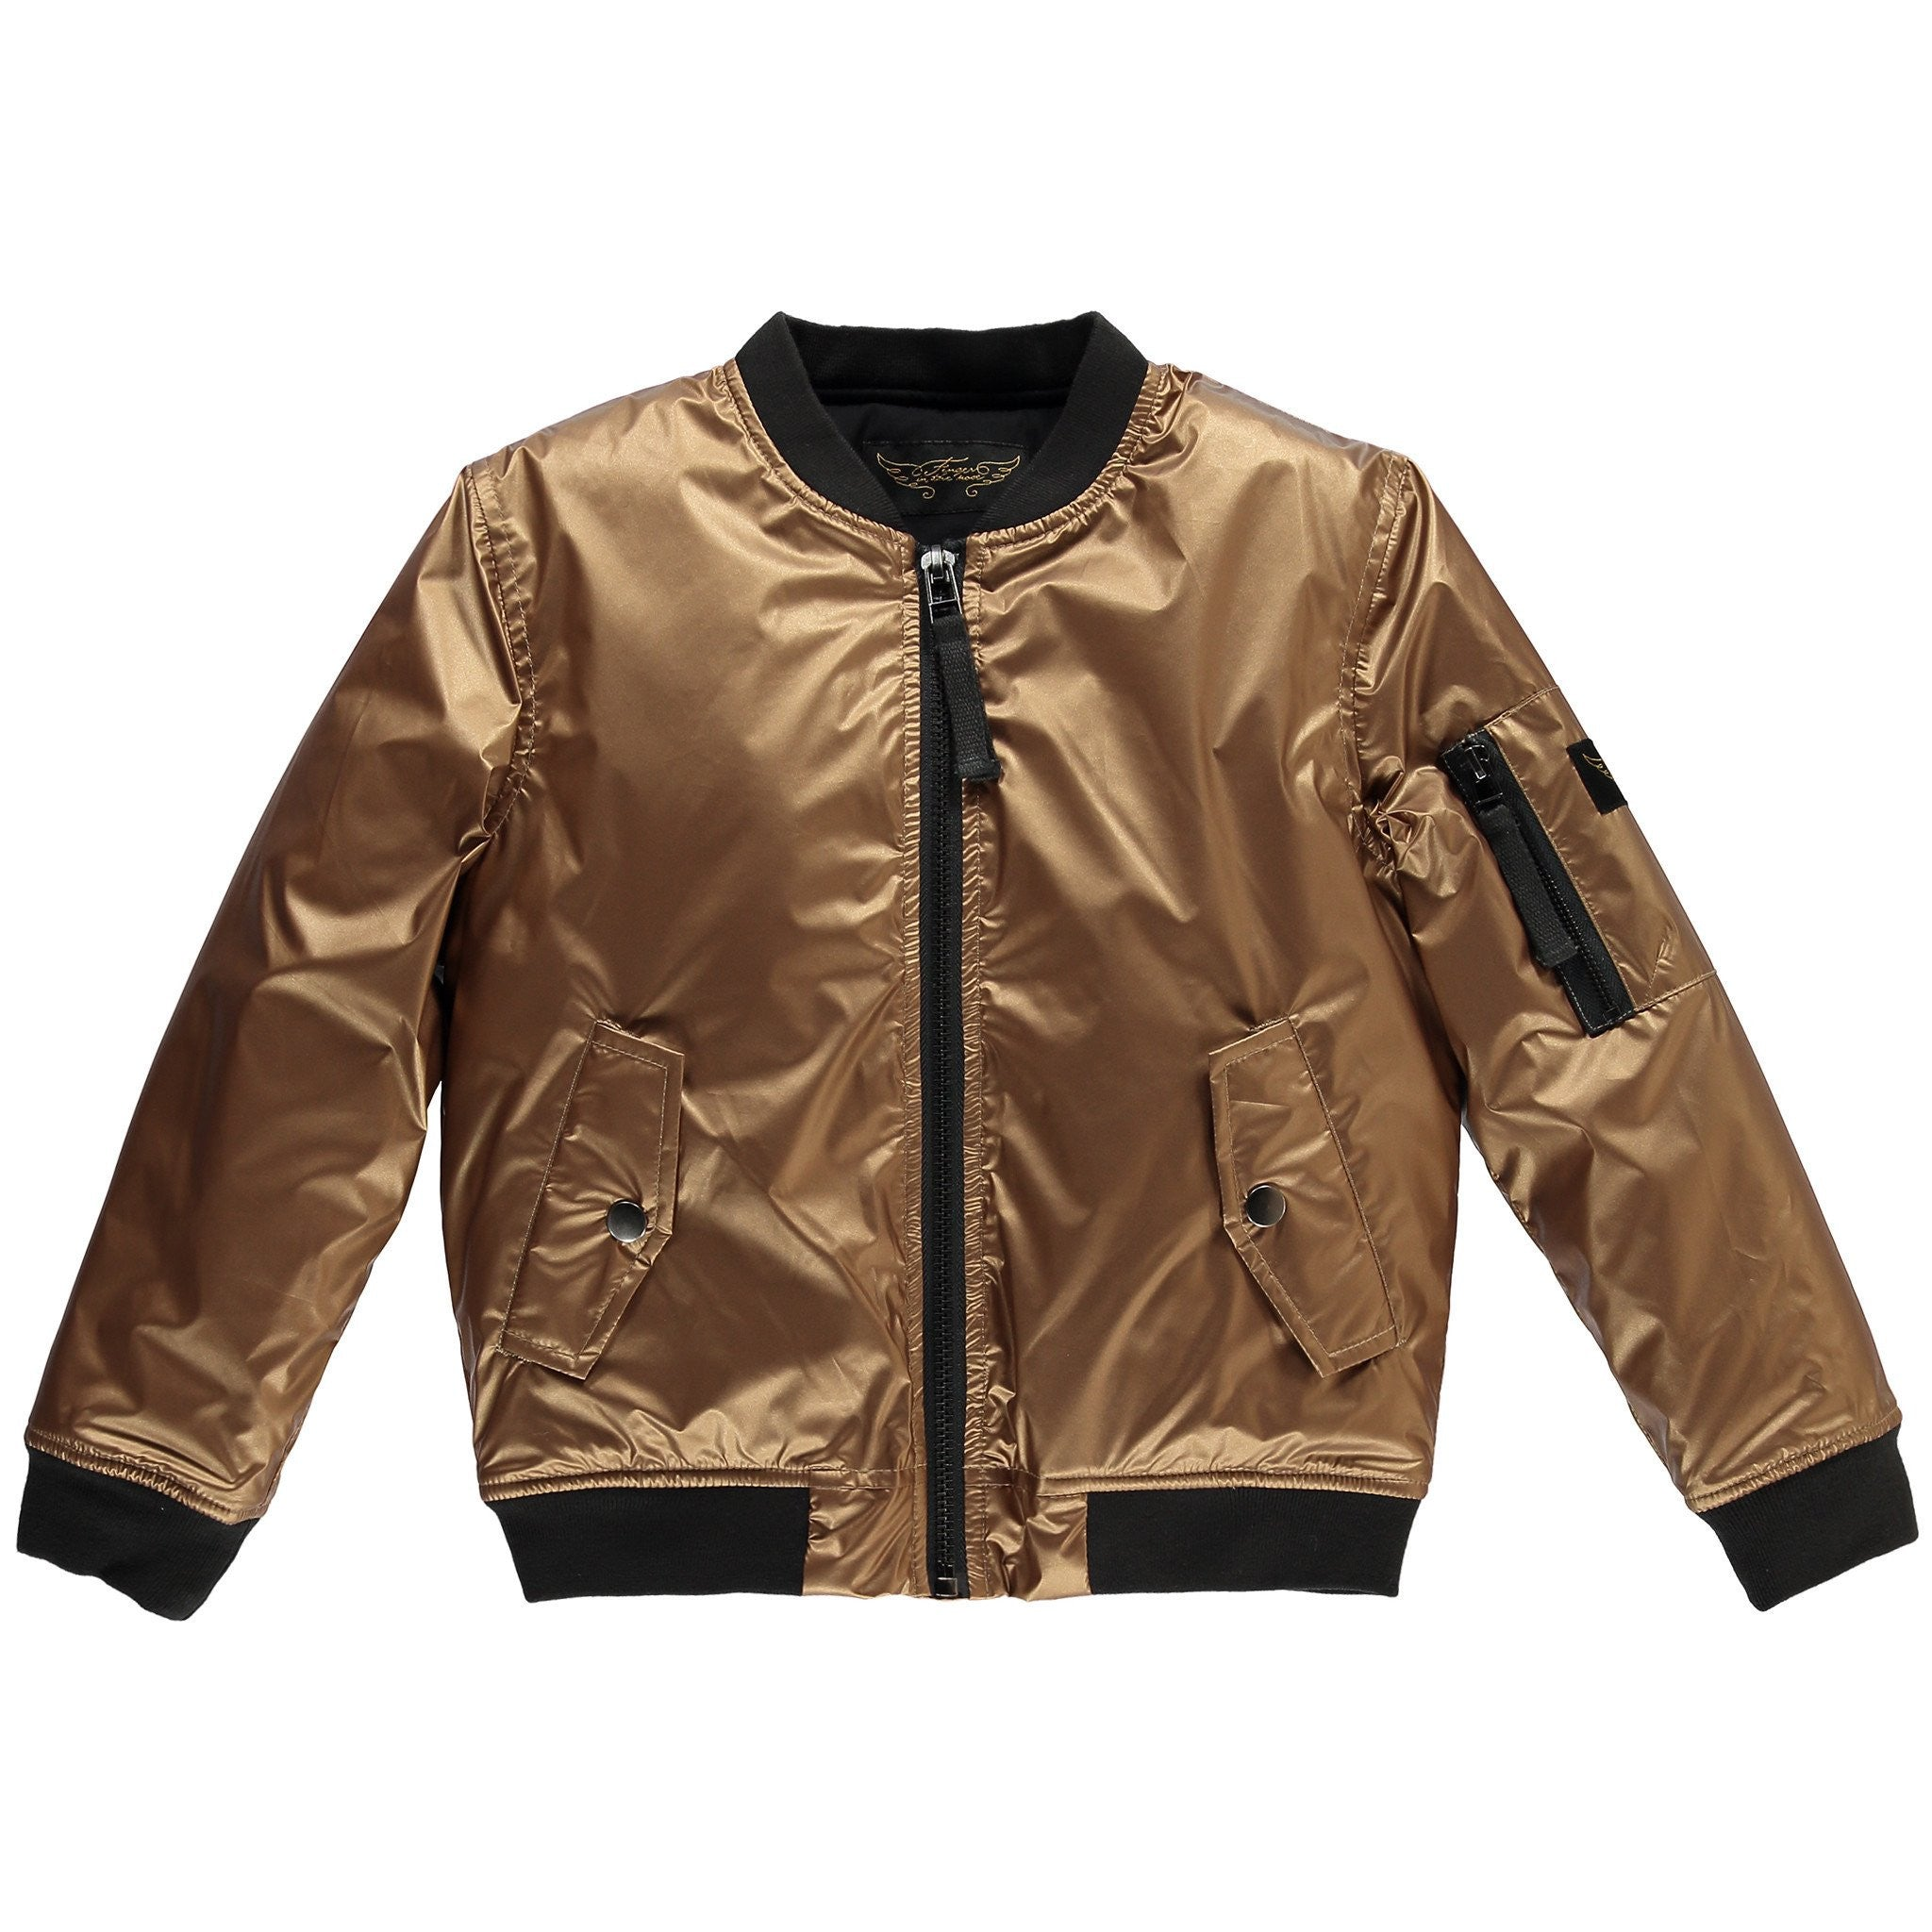 BUDDY Copper Metal - Girls Woven Bomber Jacket